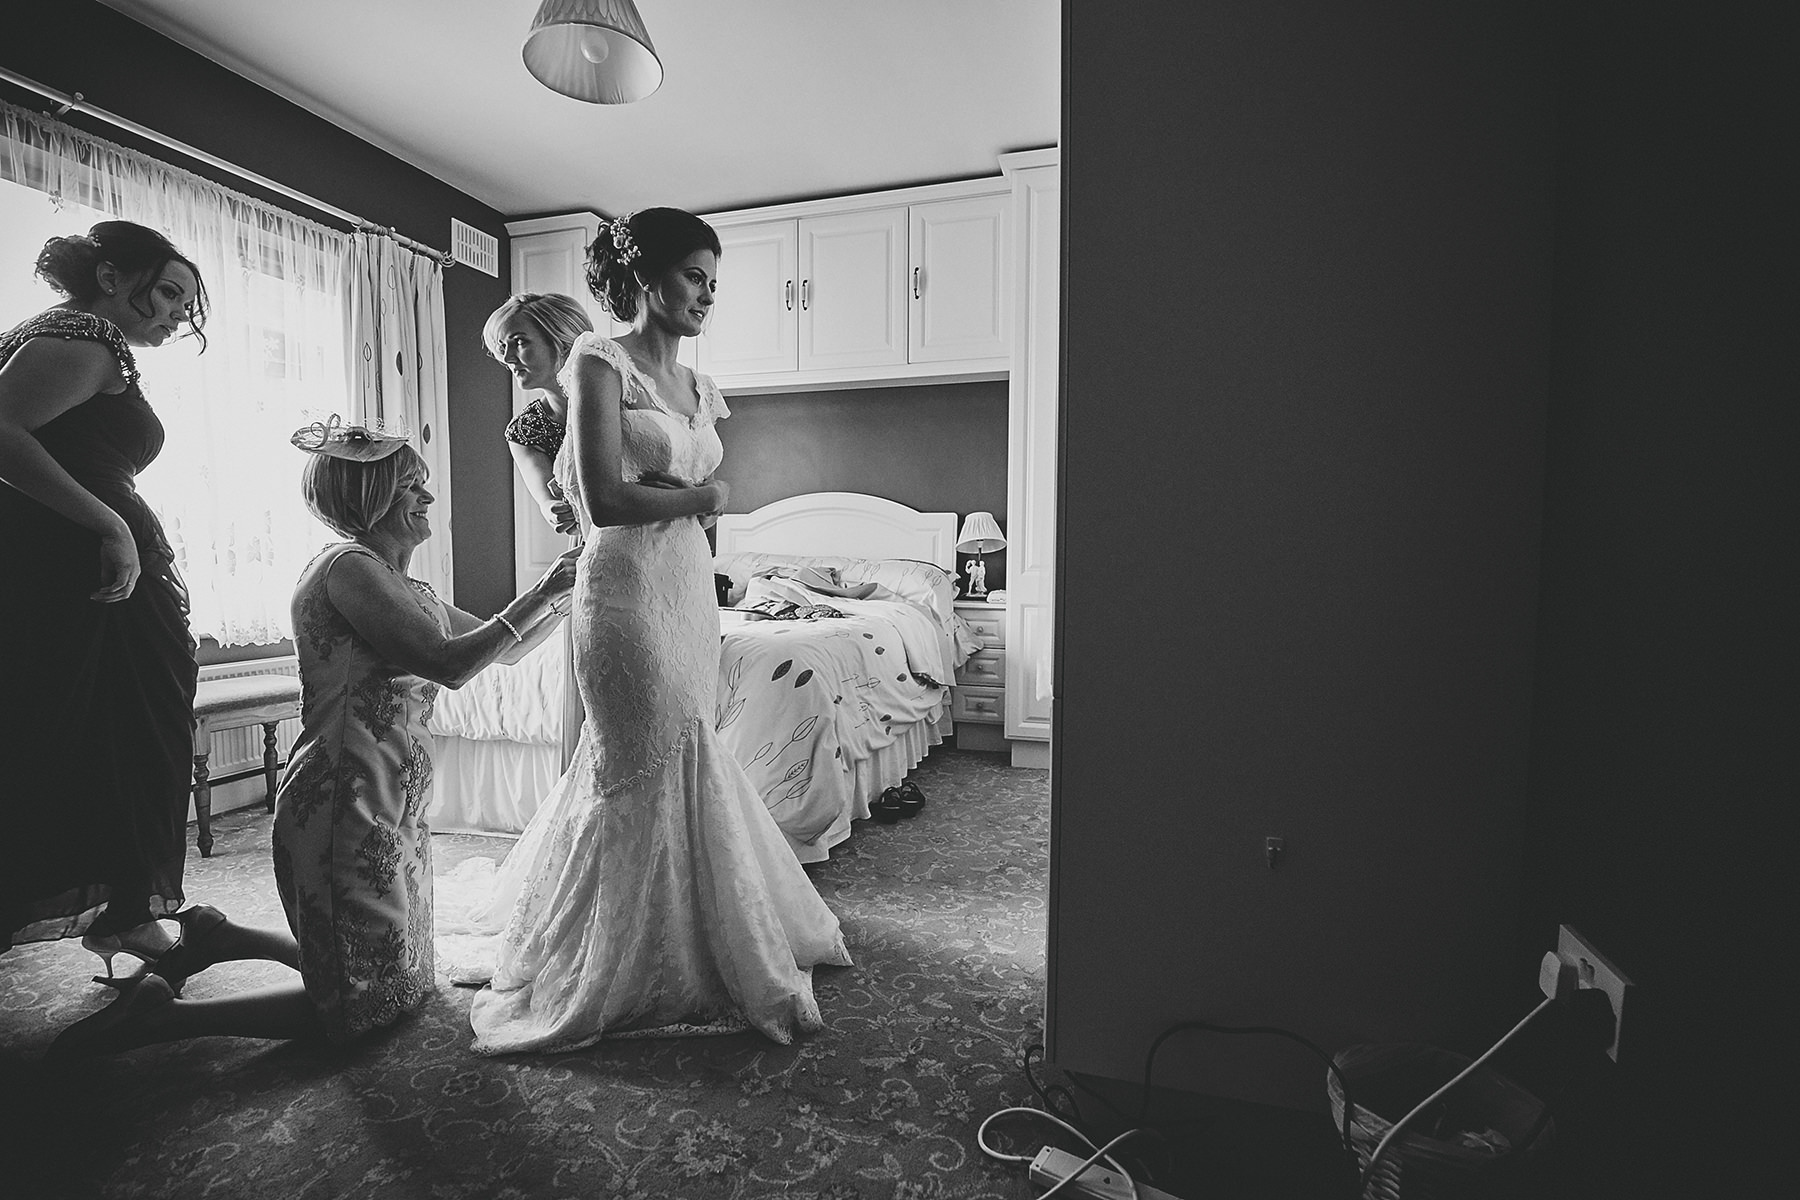 Wedding at The Keadeen Hotel Newbridge018 - Tara & Gearoid |Wedding at The Keadeen Hotel Newbridge